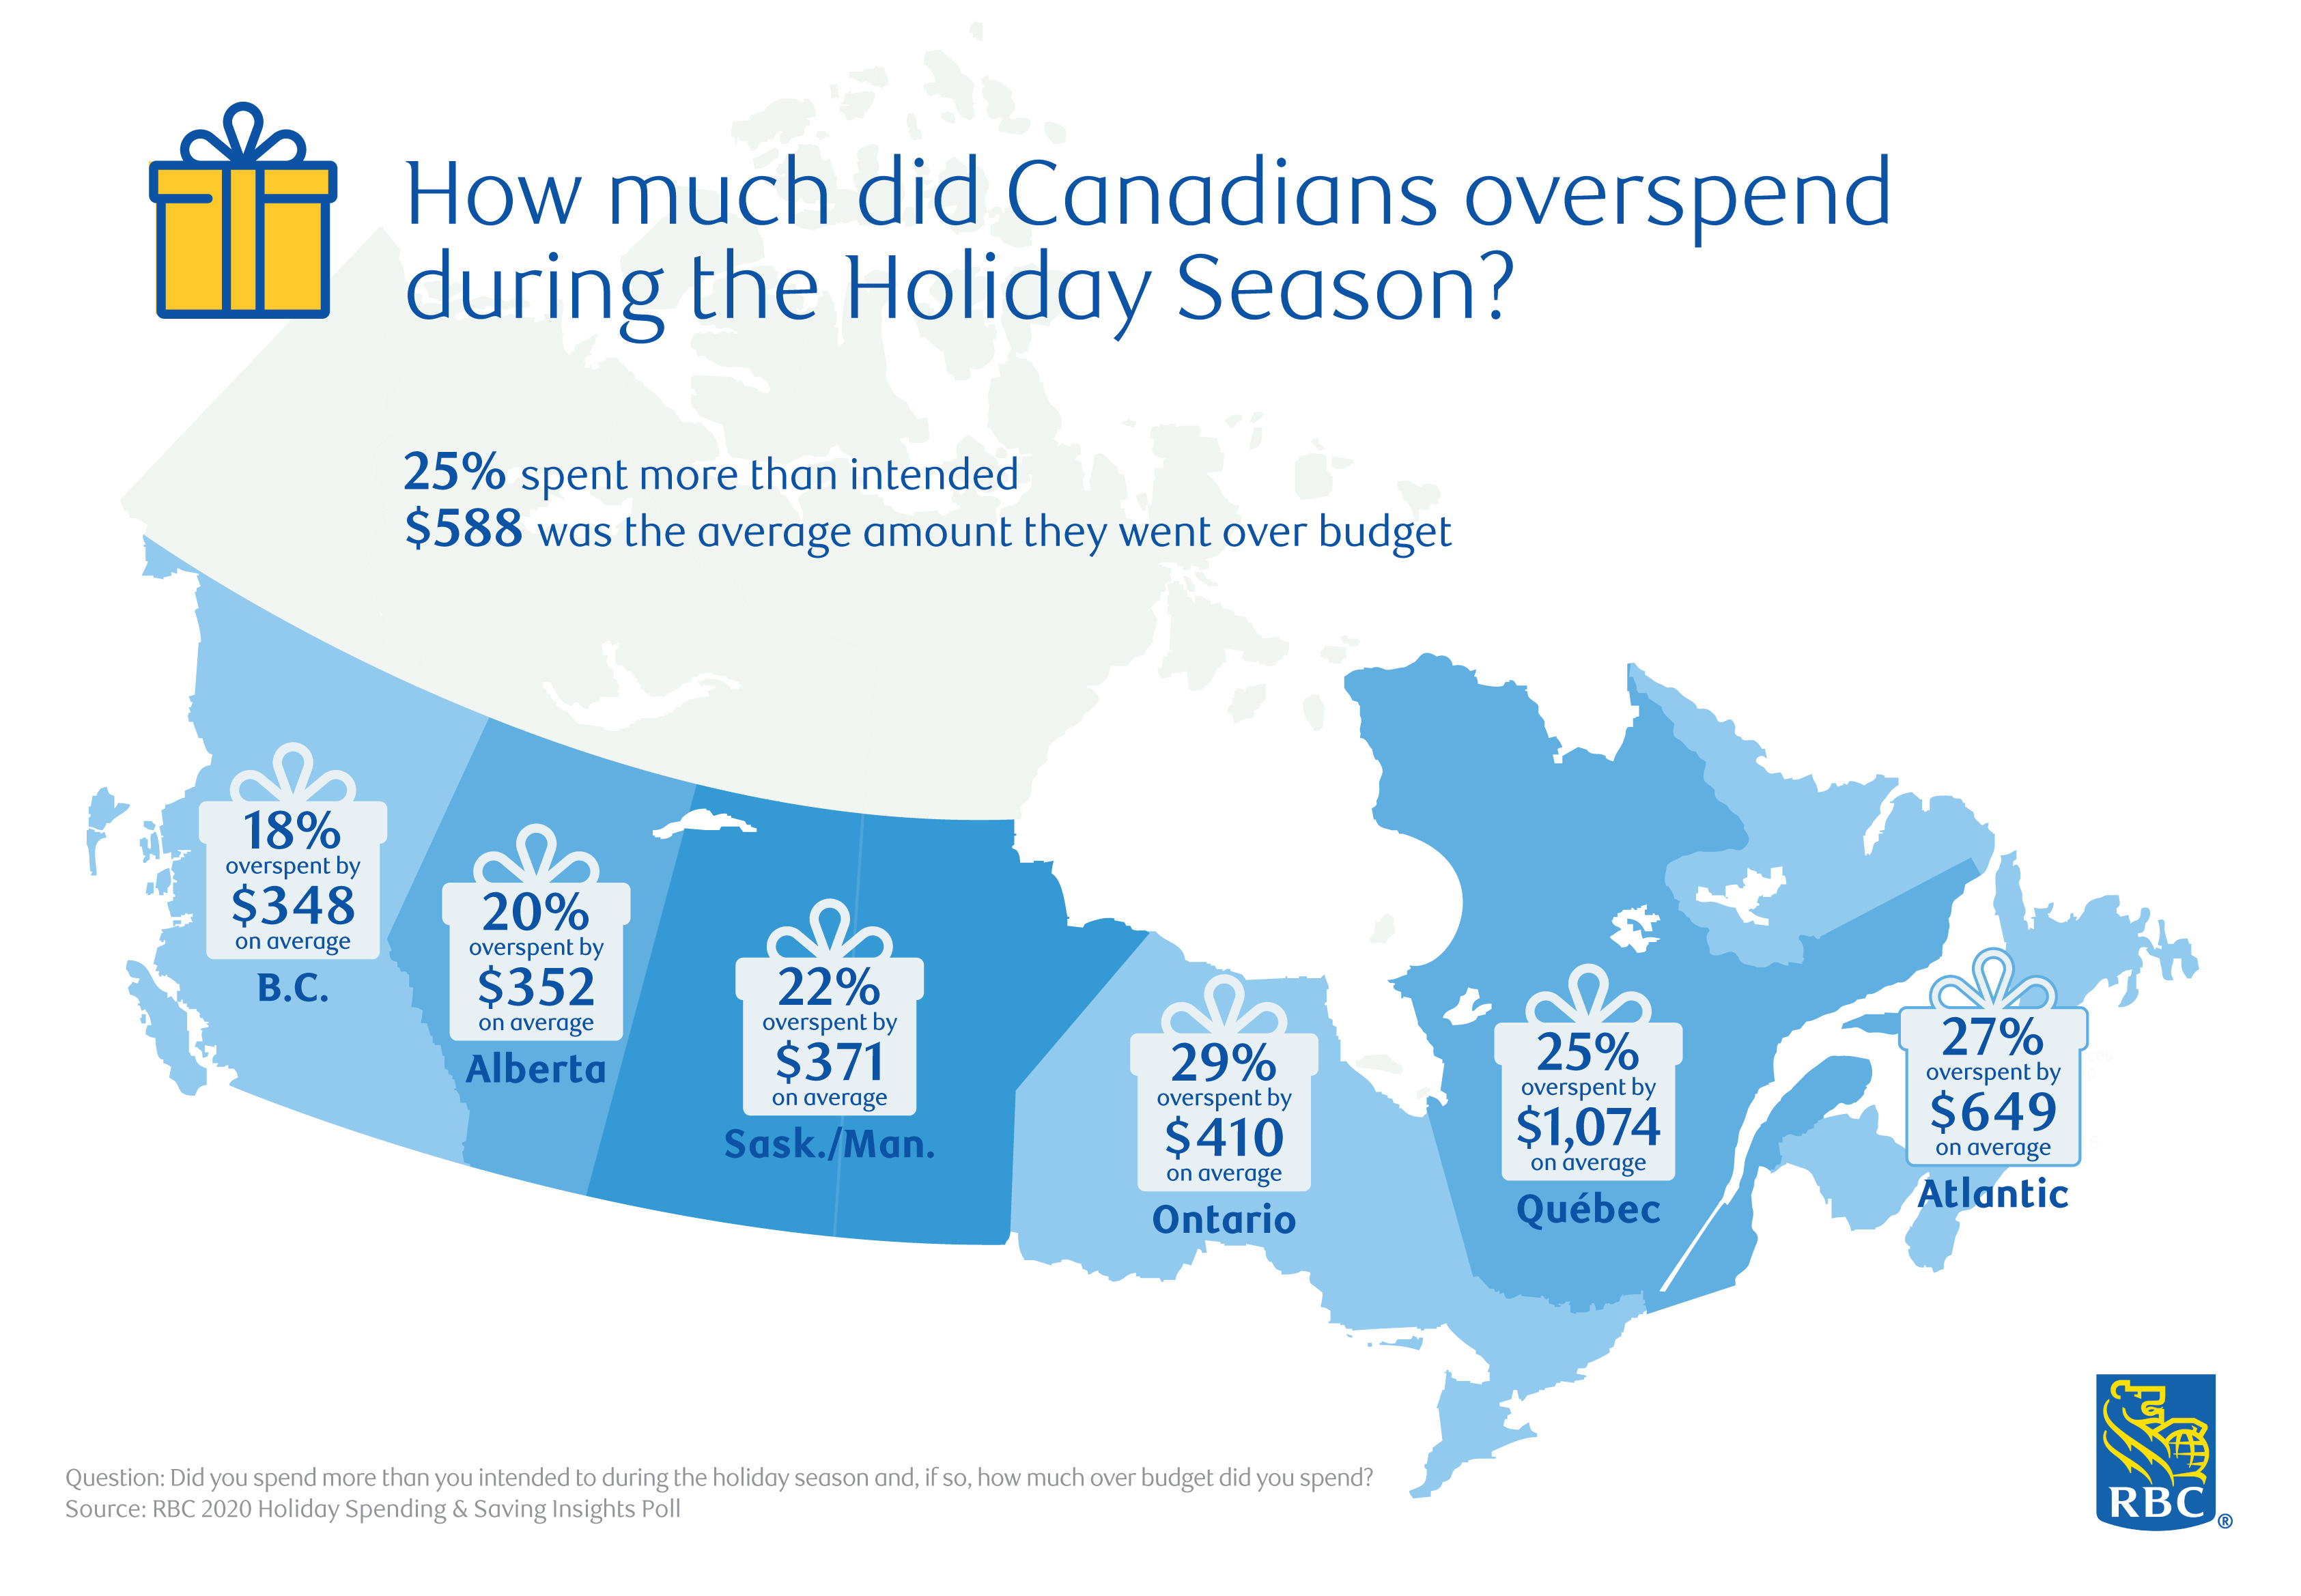 RBC poll: How much did Canadians overspend over the holiday season?